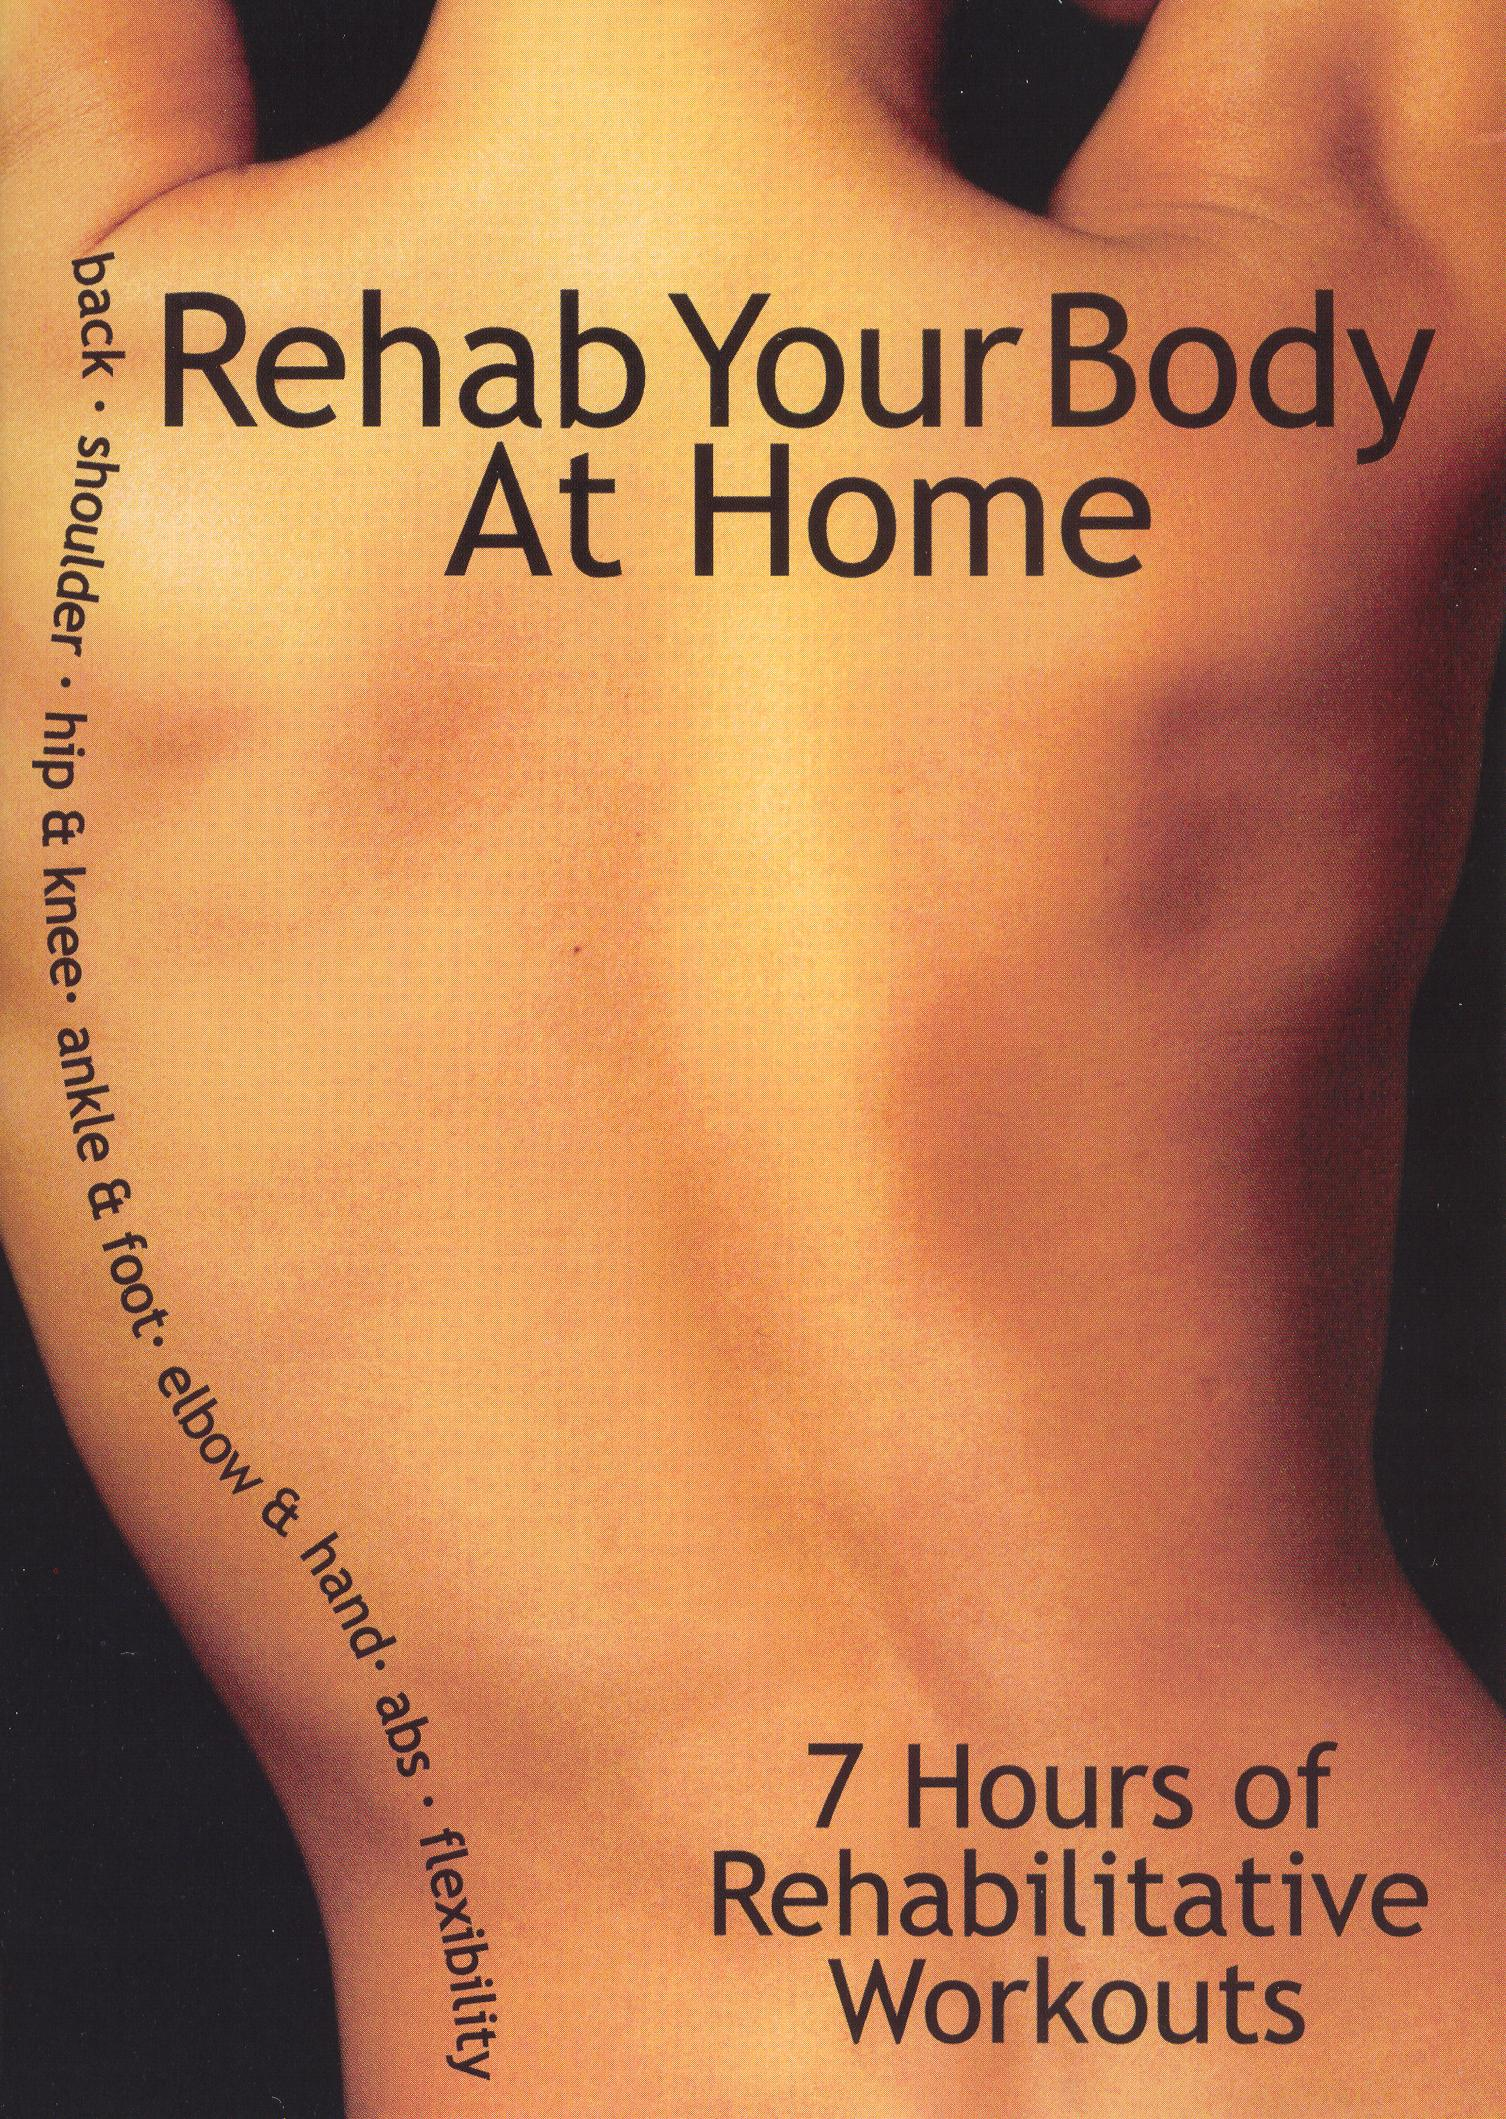 Rehab Your Body at Home